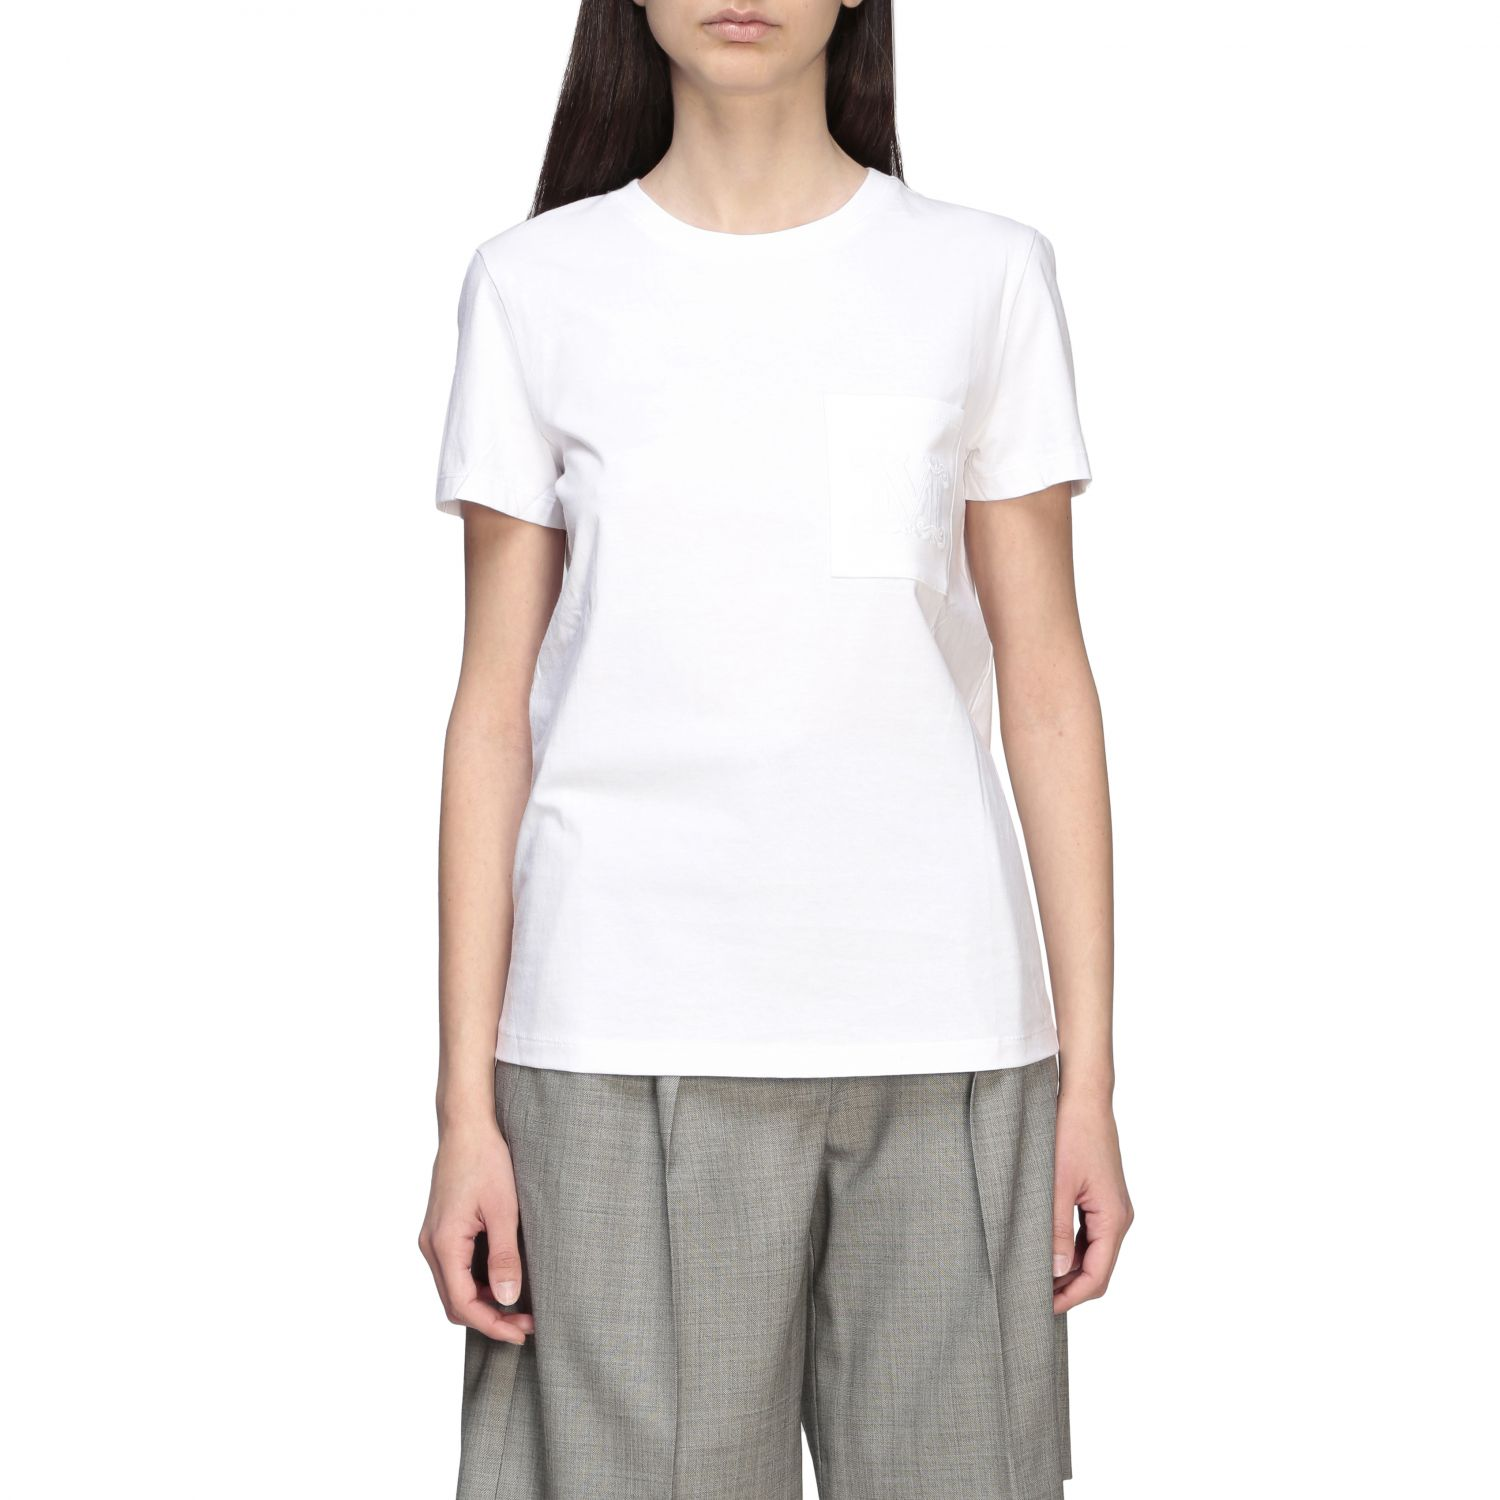 T-shirt women Max Mara white 1